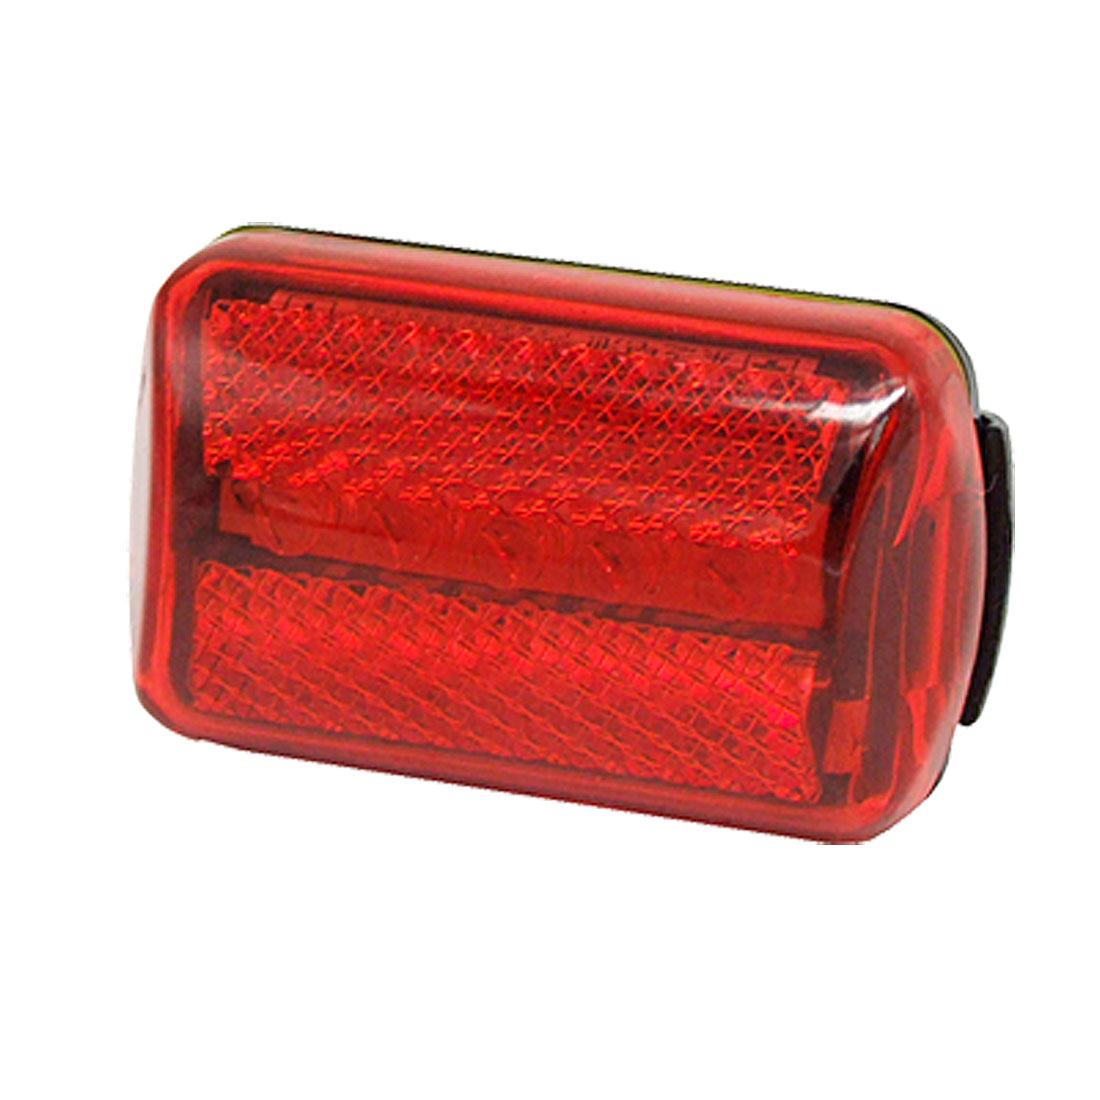 5 Red LED Rear Bike Bicycle Flash Light Lamp with 7 Mode